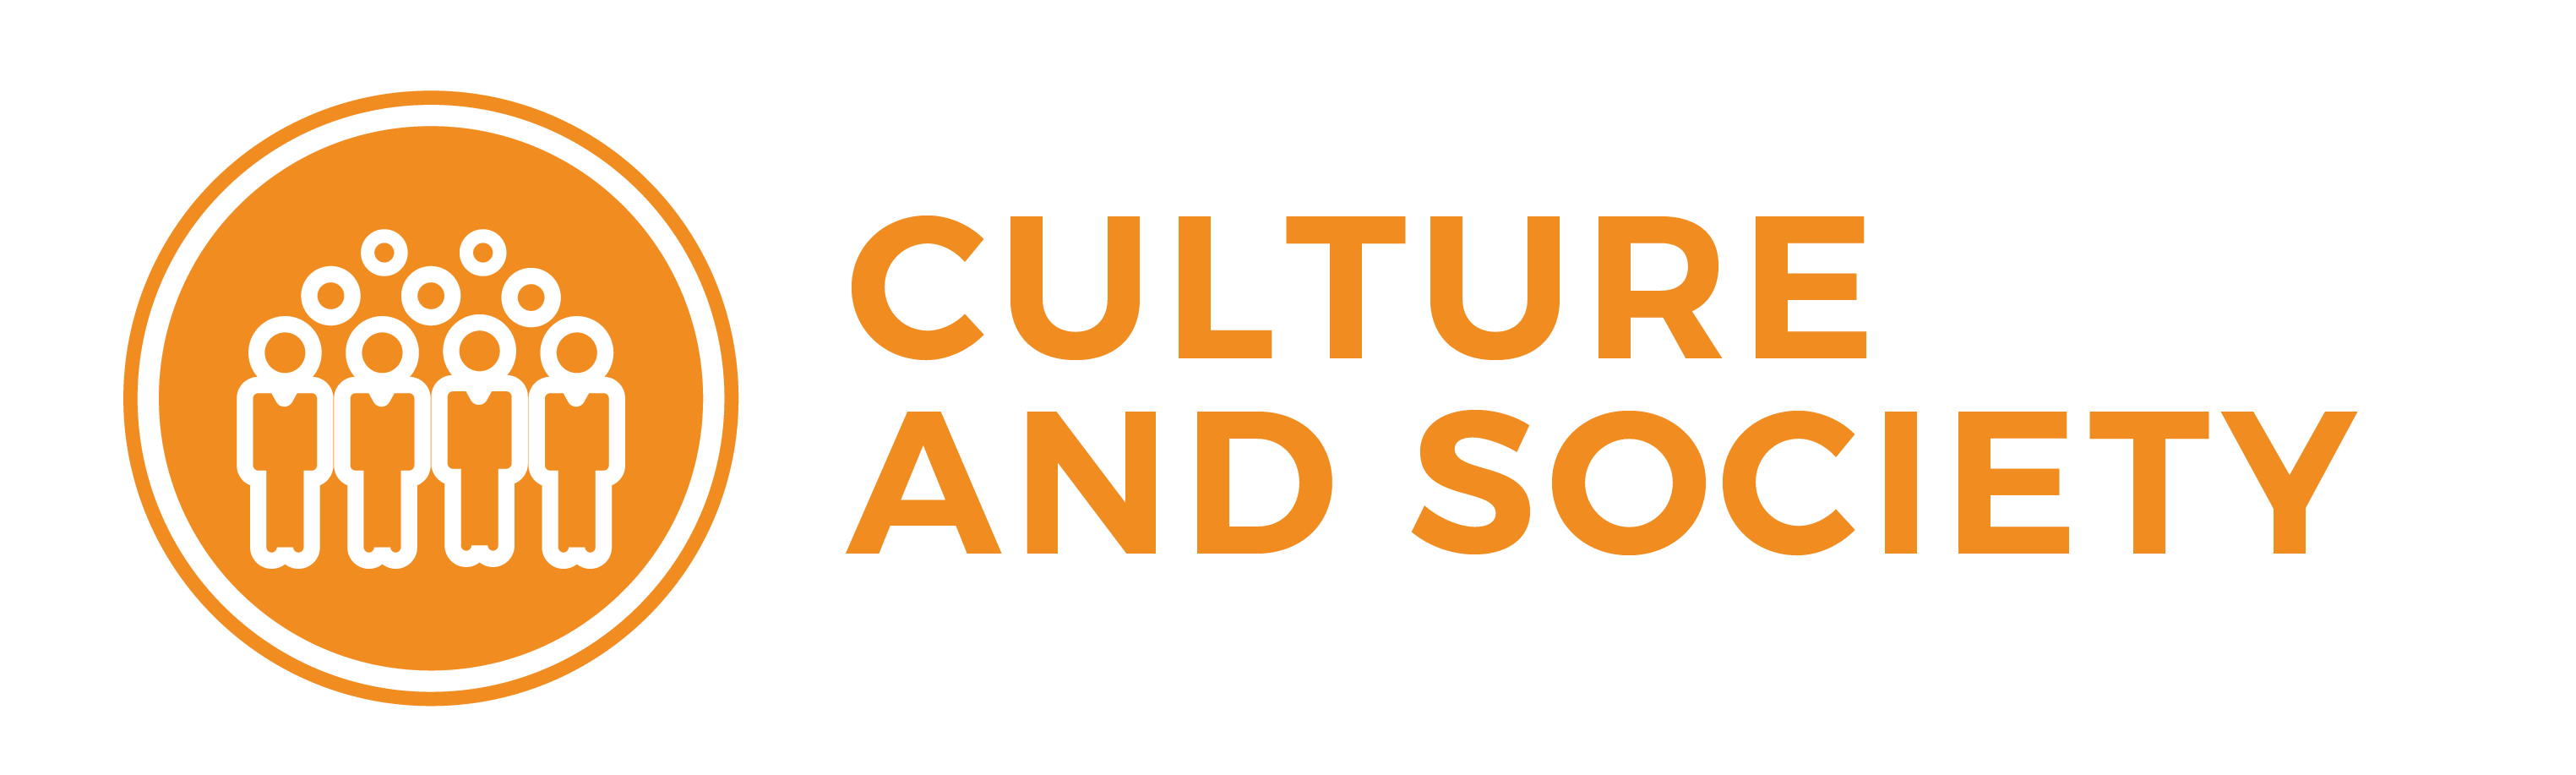 Culture and Society FOI logo